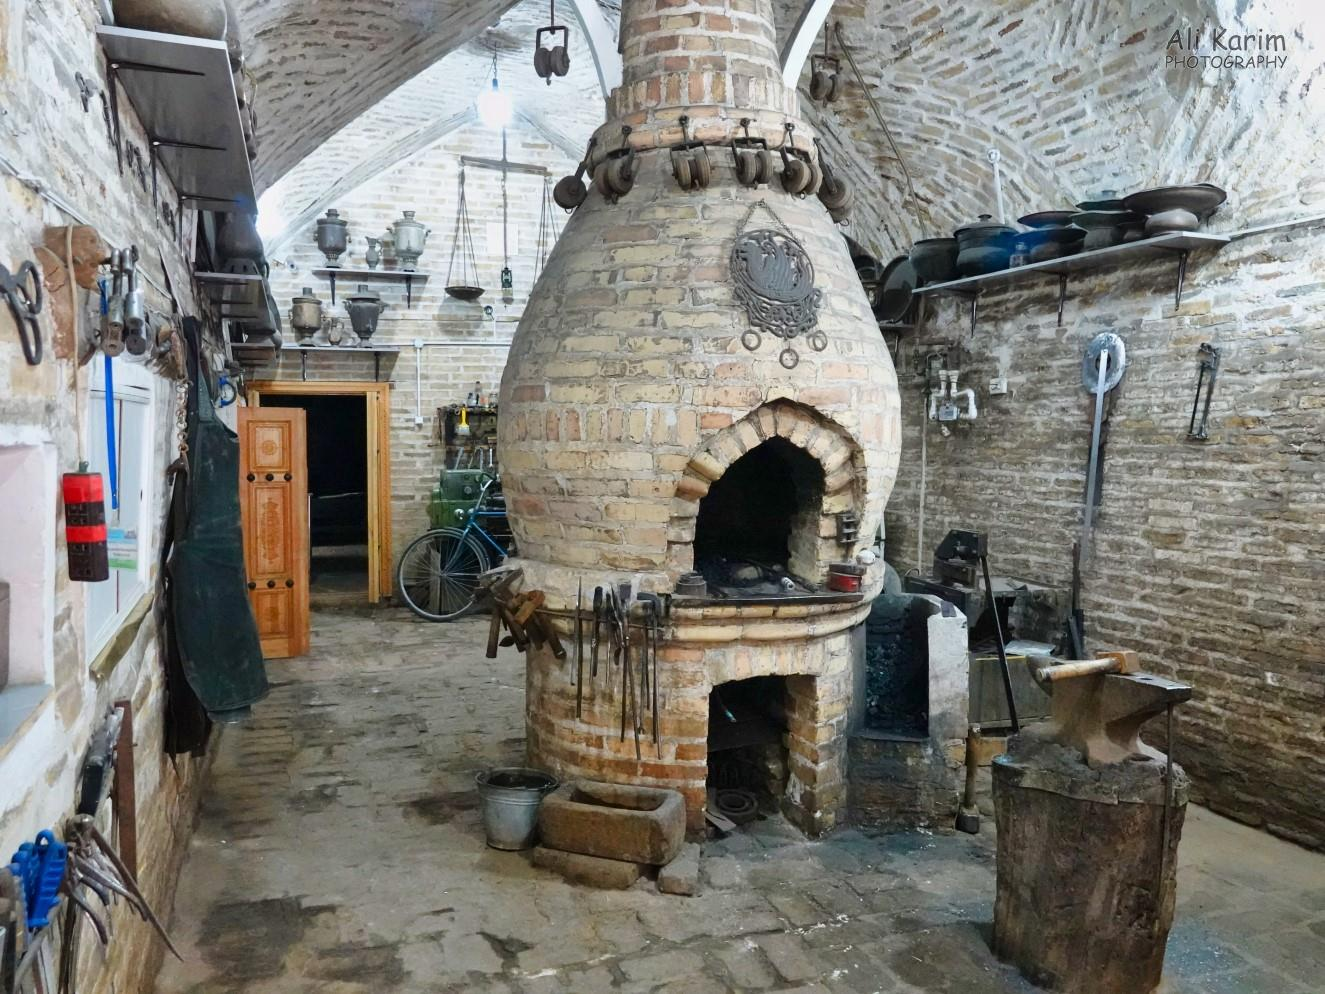 Bukhara, Oct 2019, A traditional iron-work shop still in use